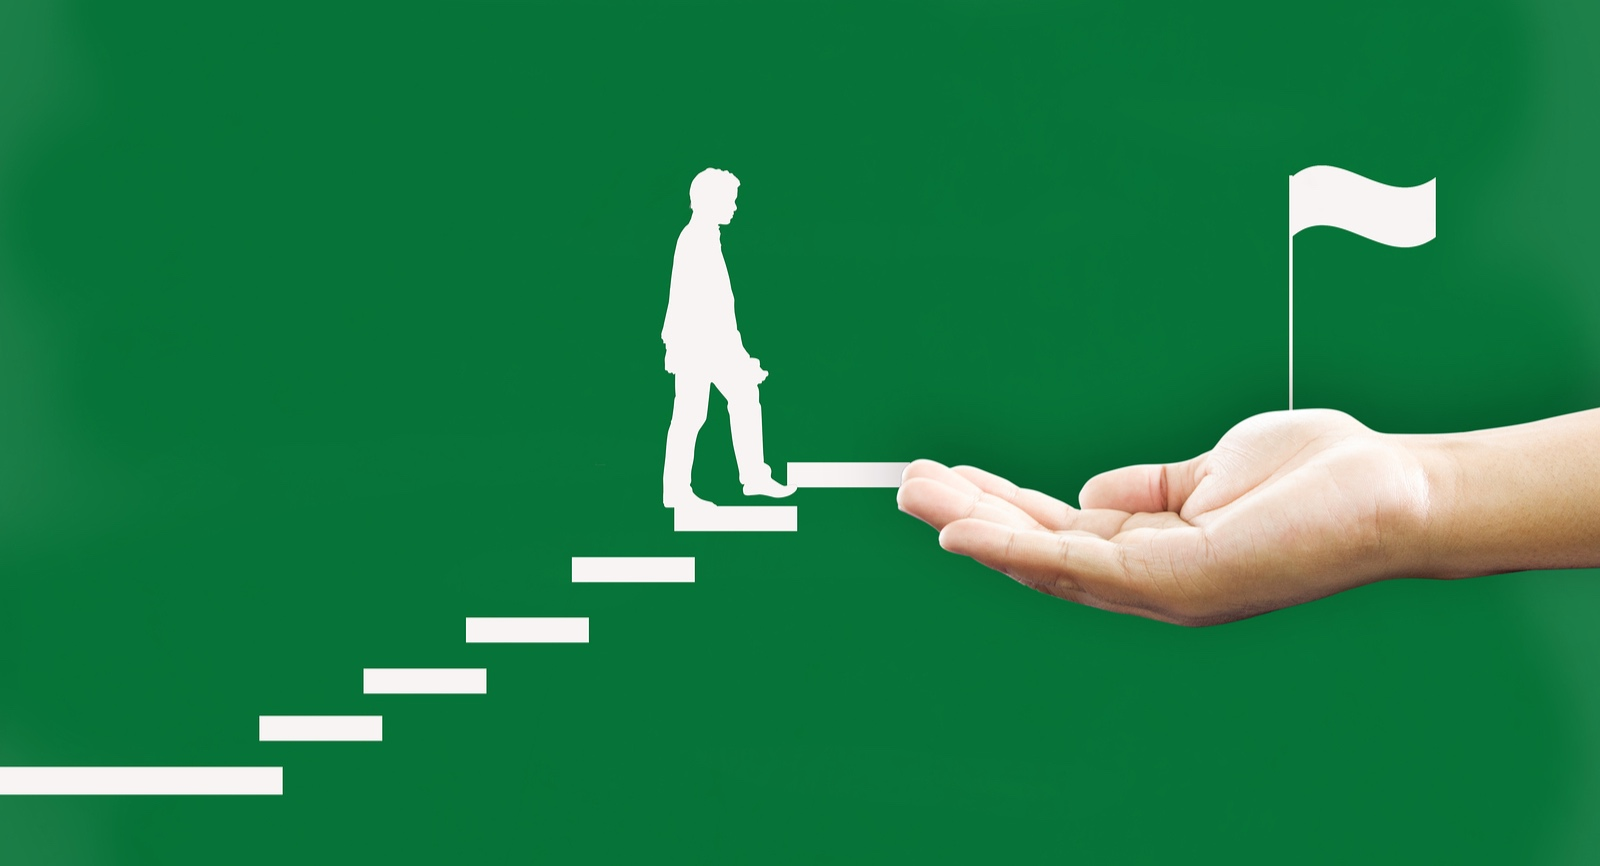 A employee climbing steps towards a goal, given a helping hand.